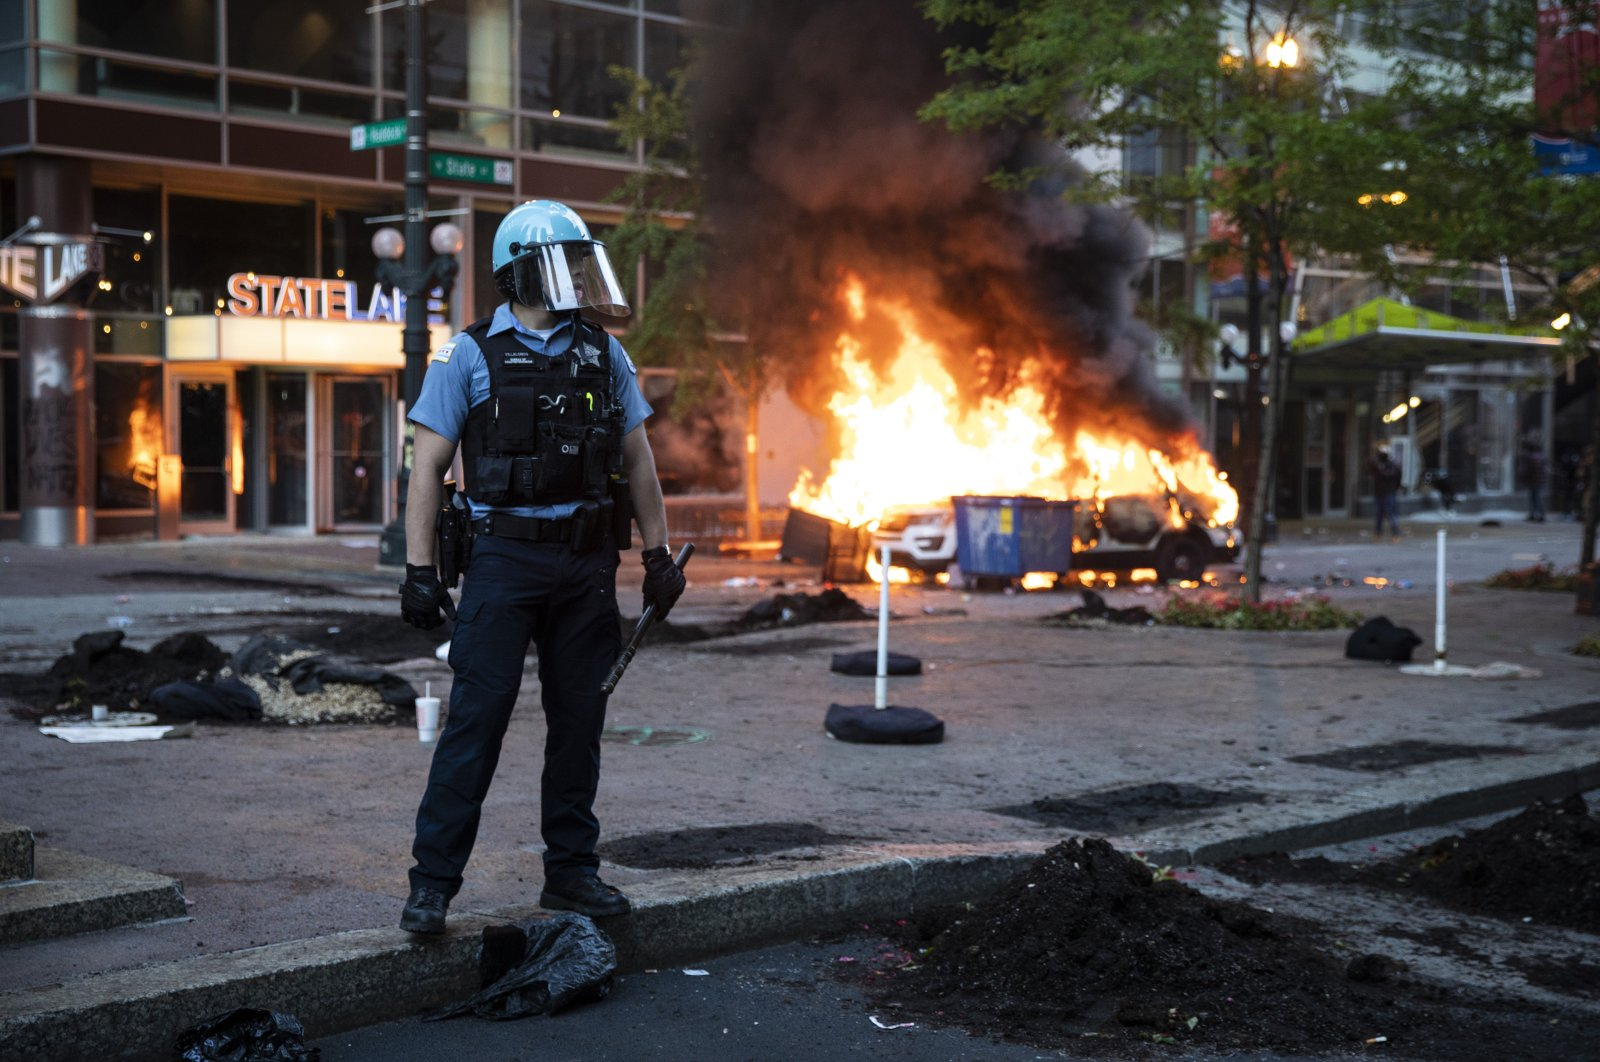 A Chicago Police Department SUV is set on fire near State and Lake in the Loop in Chicago, Illinois, U.S. May 30, 2020, as thousands of protesters joined national outrage over the death of George Floyd, who died in police custody on Memorial Day in Minneapolis. (Chicago Sun-Times via AP)